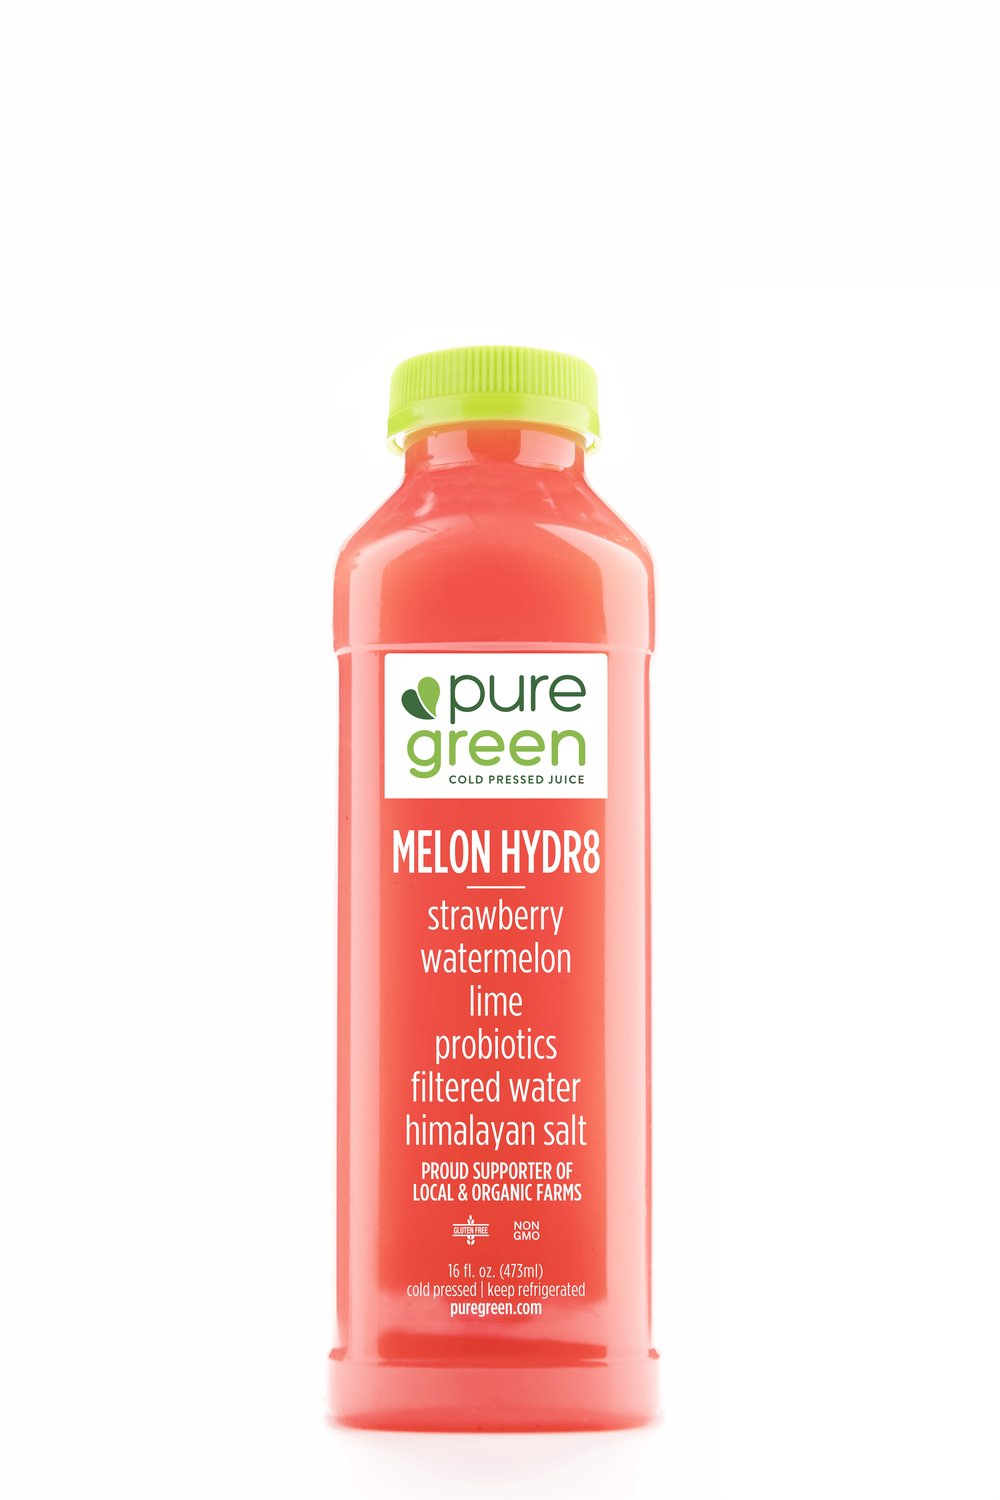 Melon+Hydr8+cold+pressed+juice.jpg